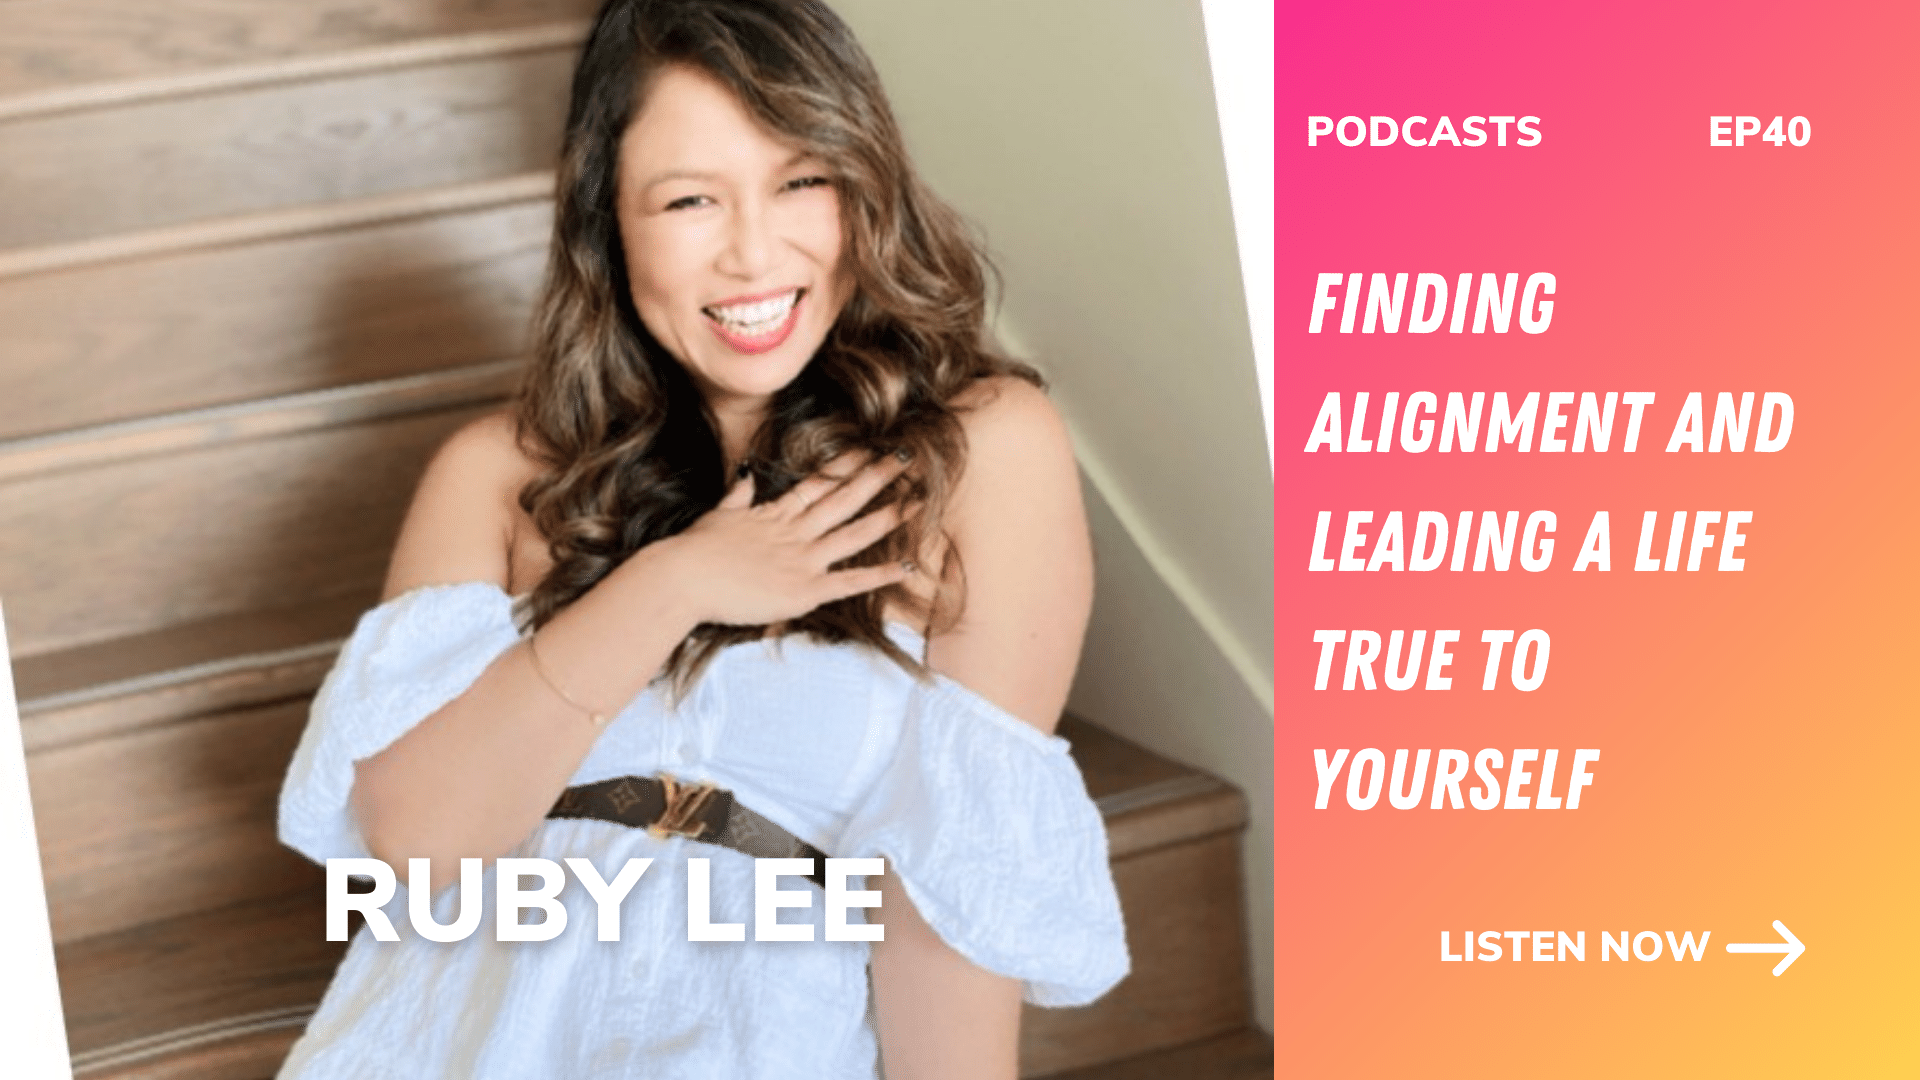 Finding alignment and leading a life true to yourself | Ruby Lee Founder of Own Your Hustle and Online Business Coach | Ep40